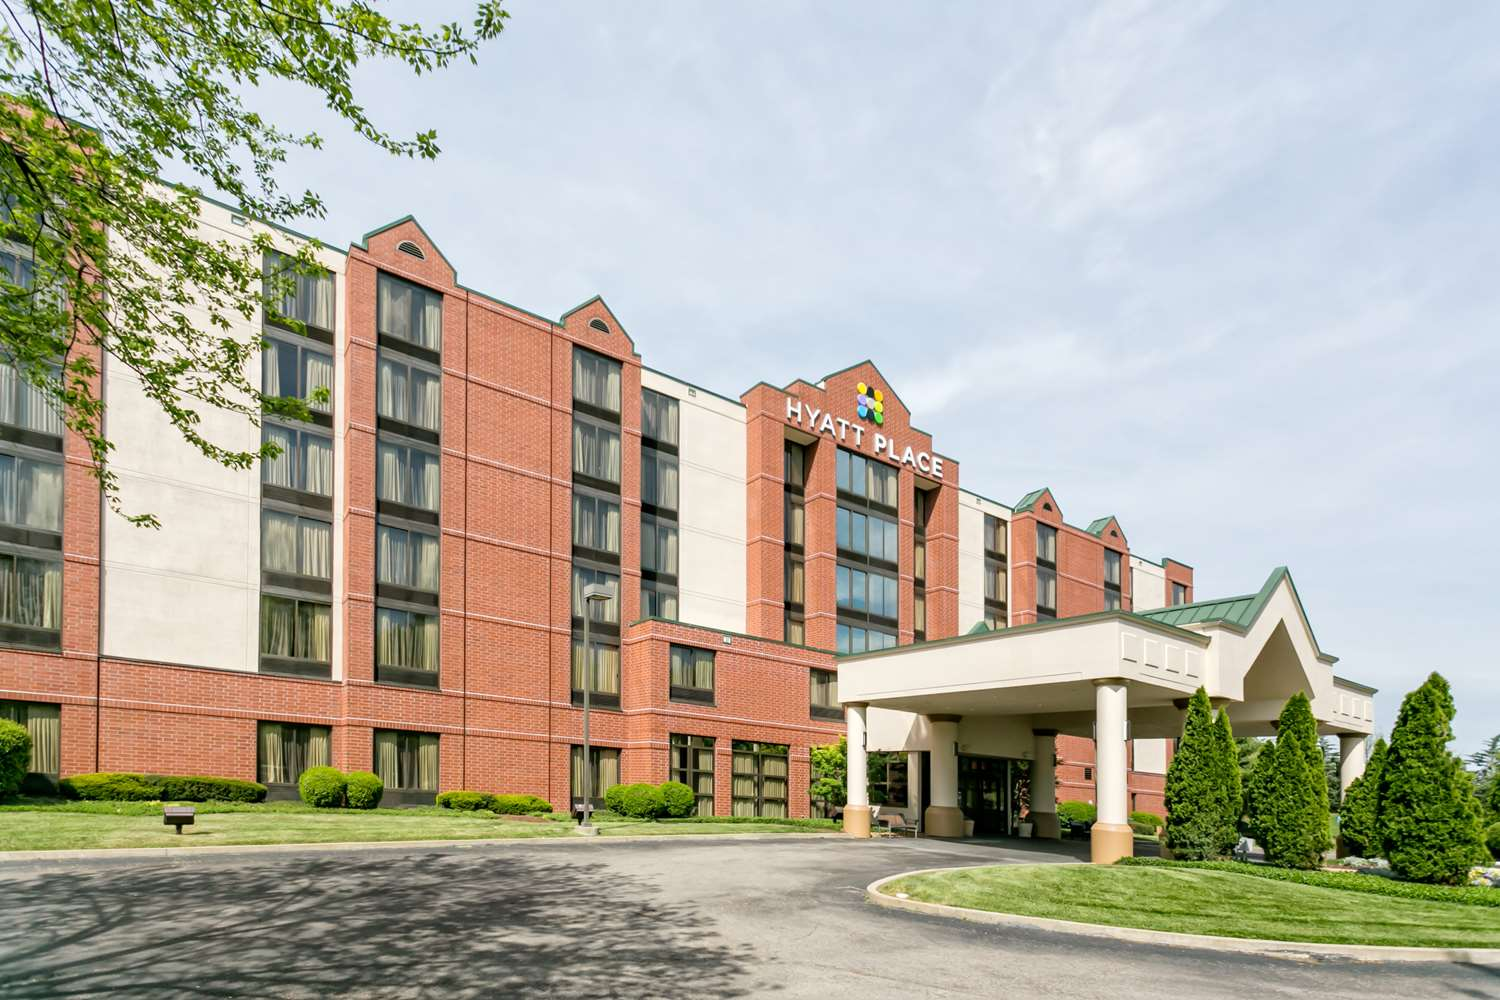 hyatt place hotel franklin tn see discounts. Black Bedroom Furniture Sets. Home Design Ideas